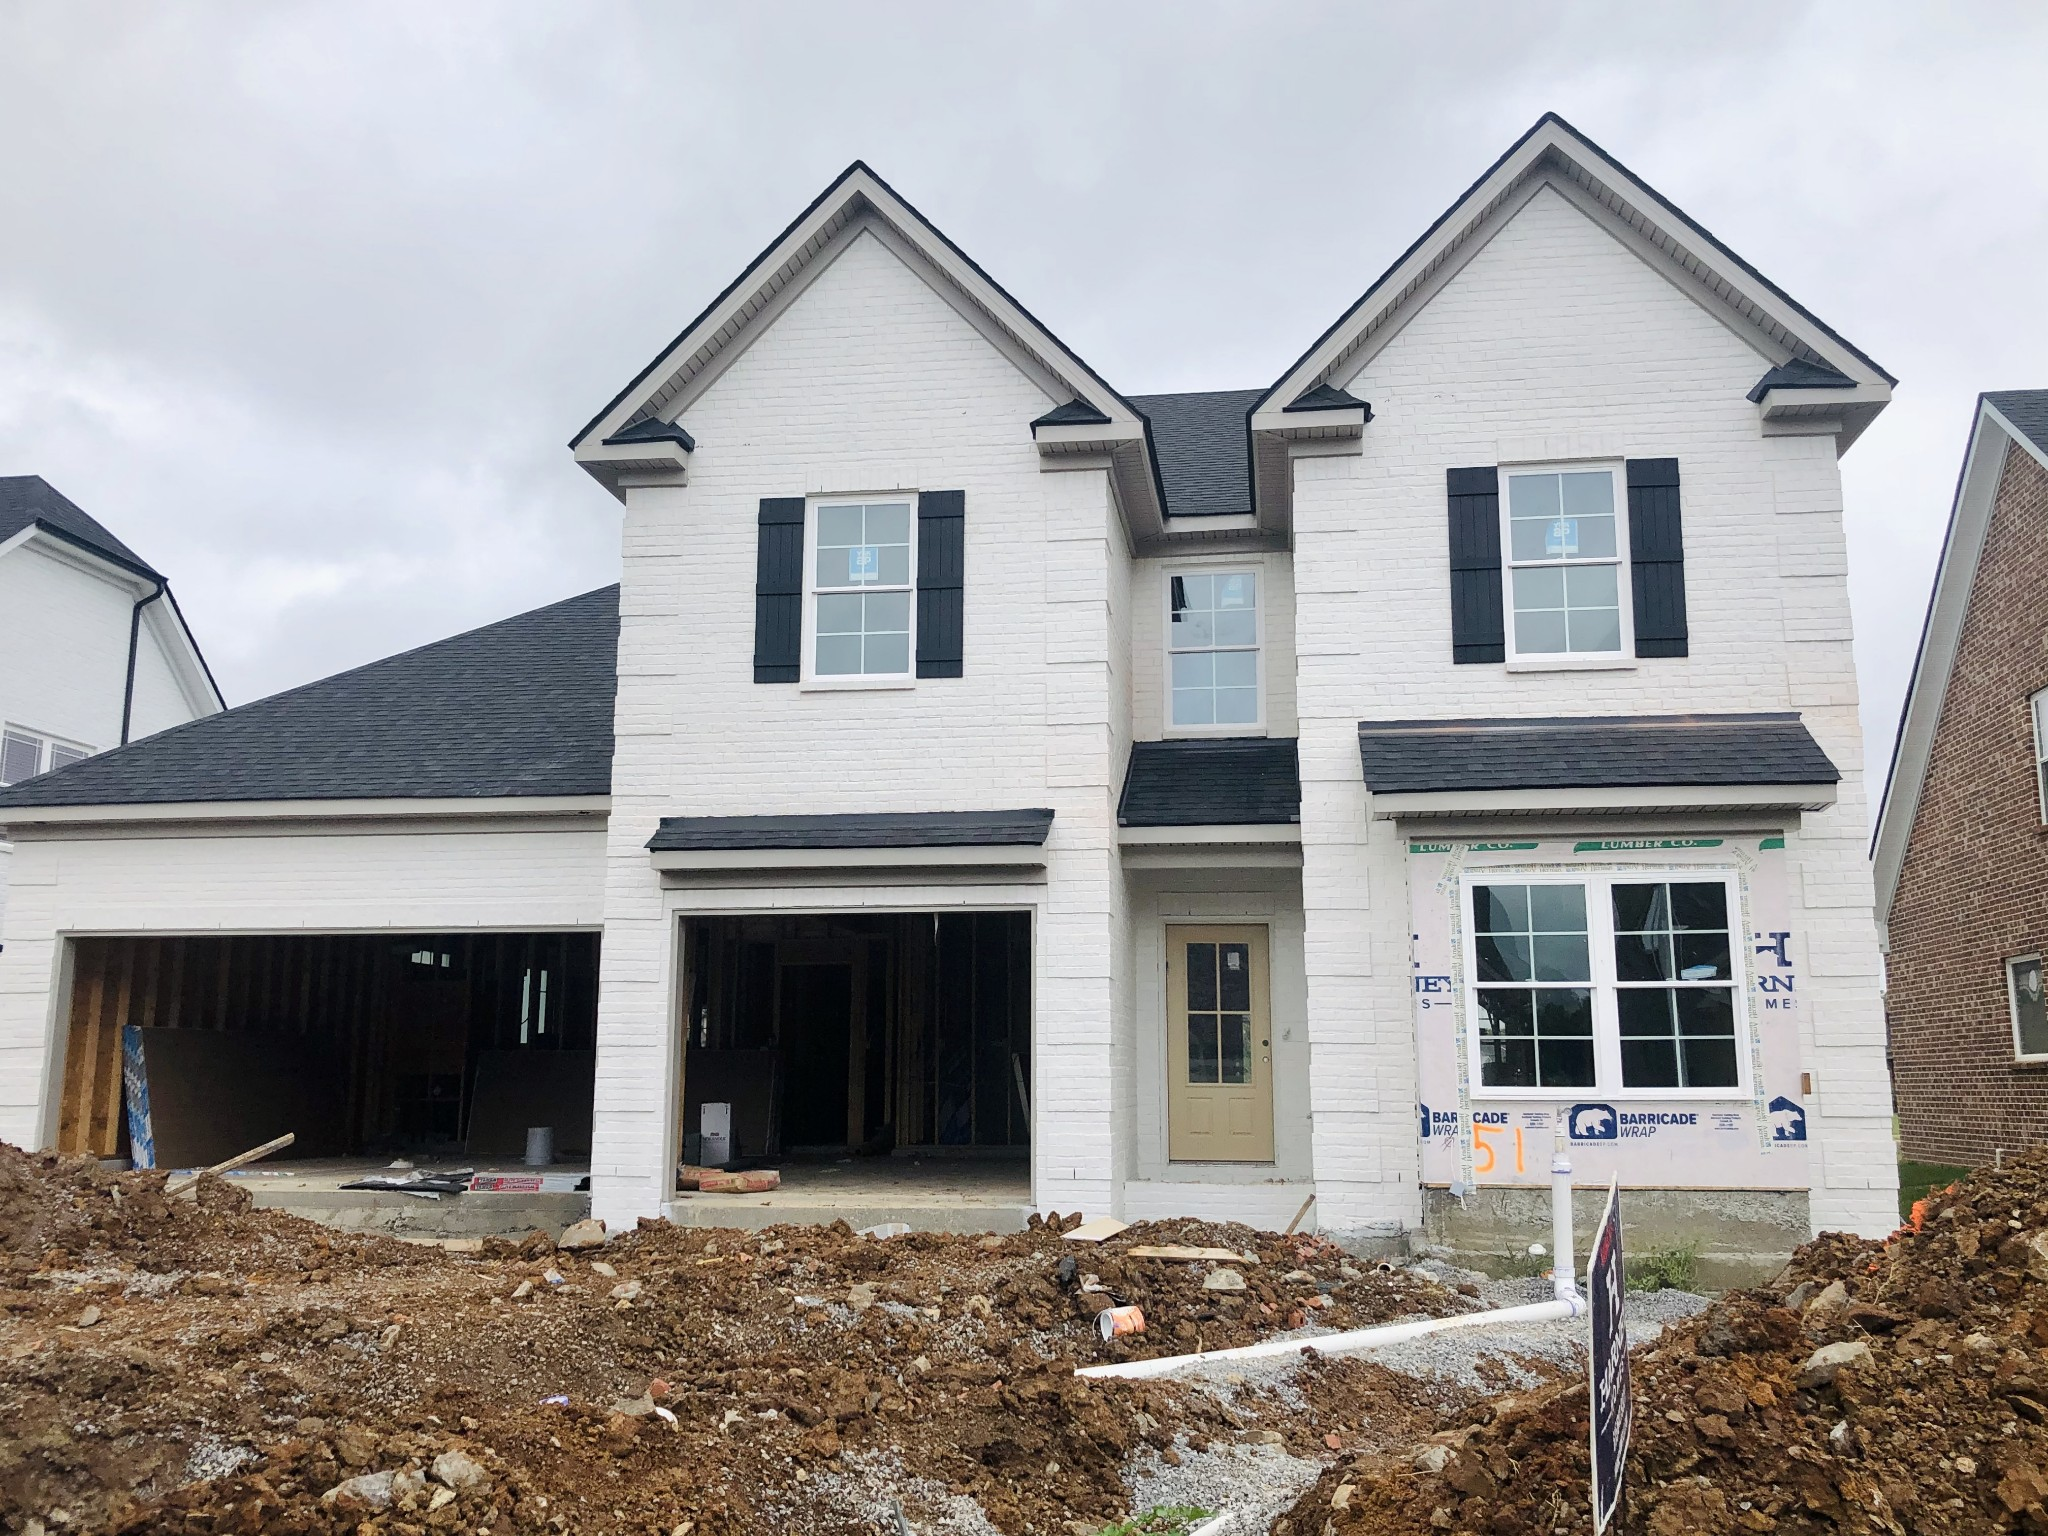 3920 Runyan Cv (Lot 51) Property Photo - Murfreesboro, TN real estate listing